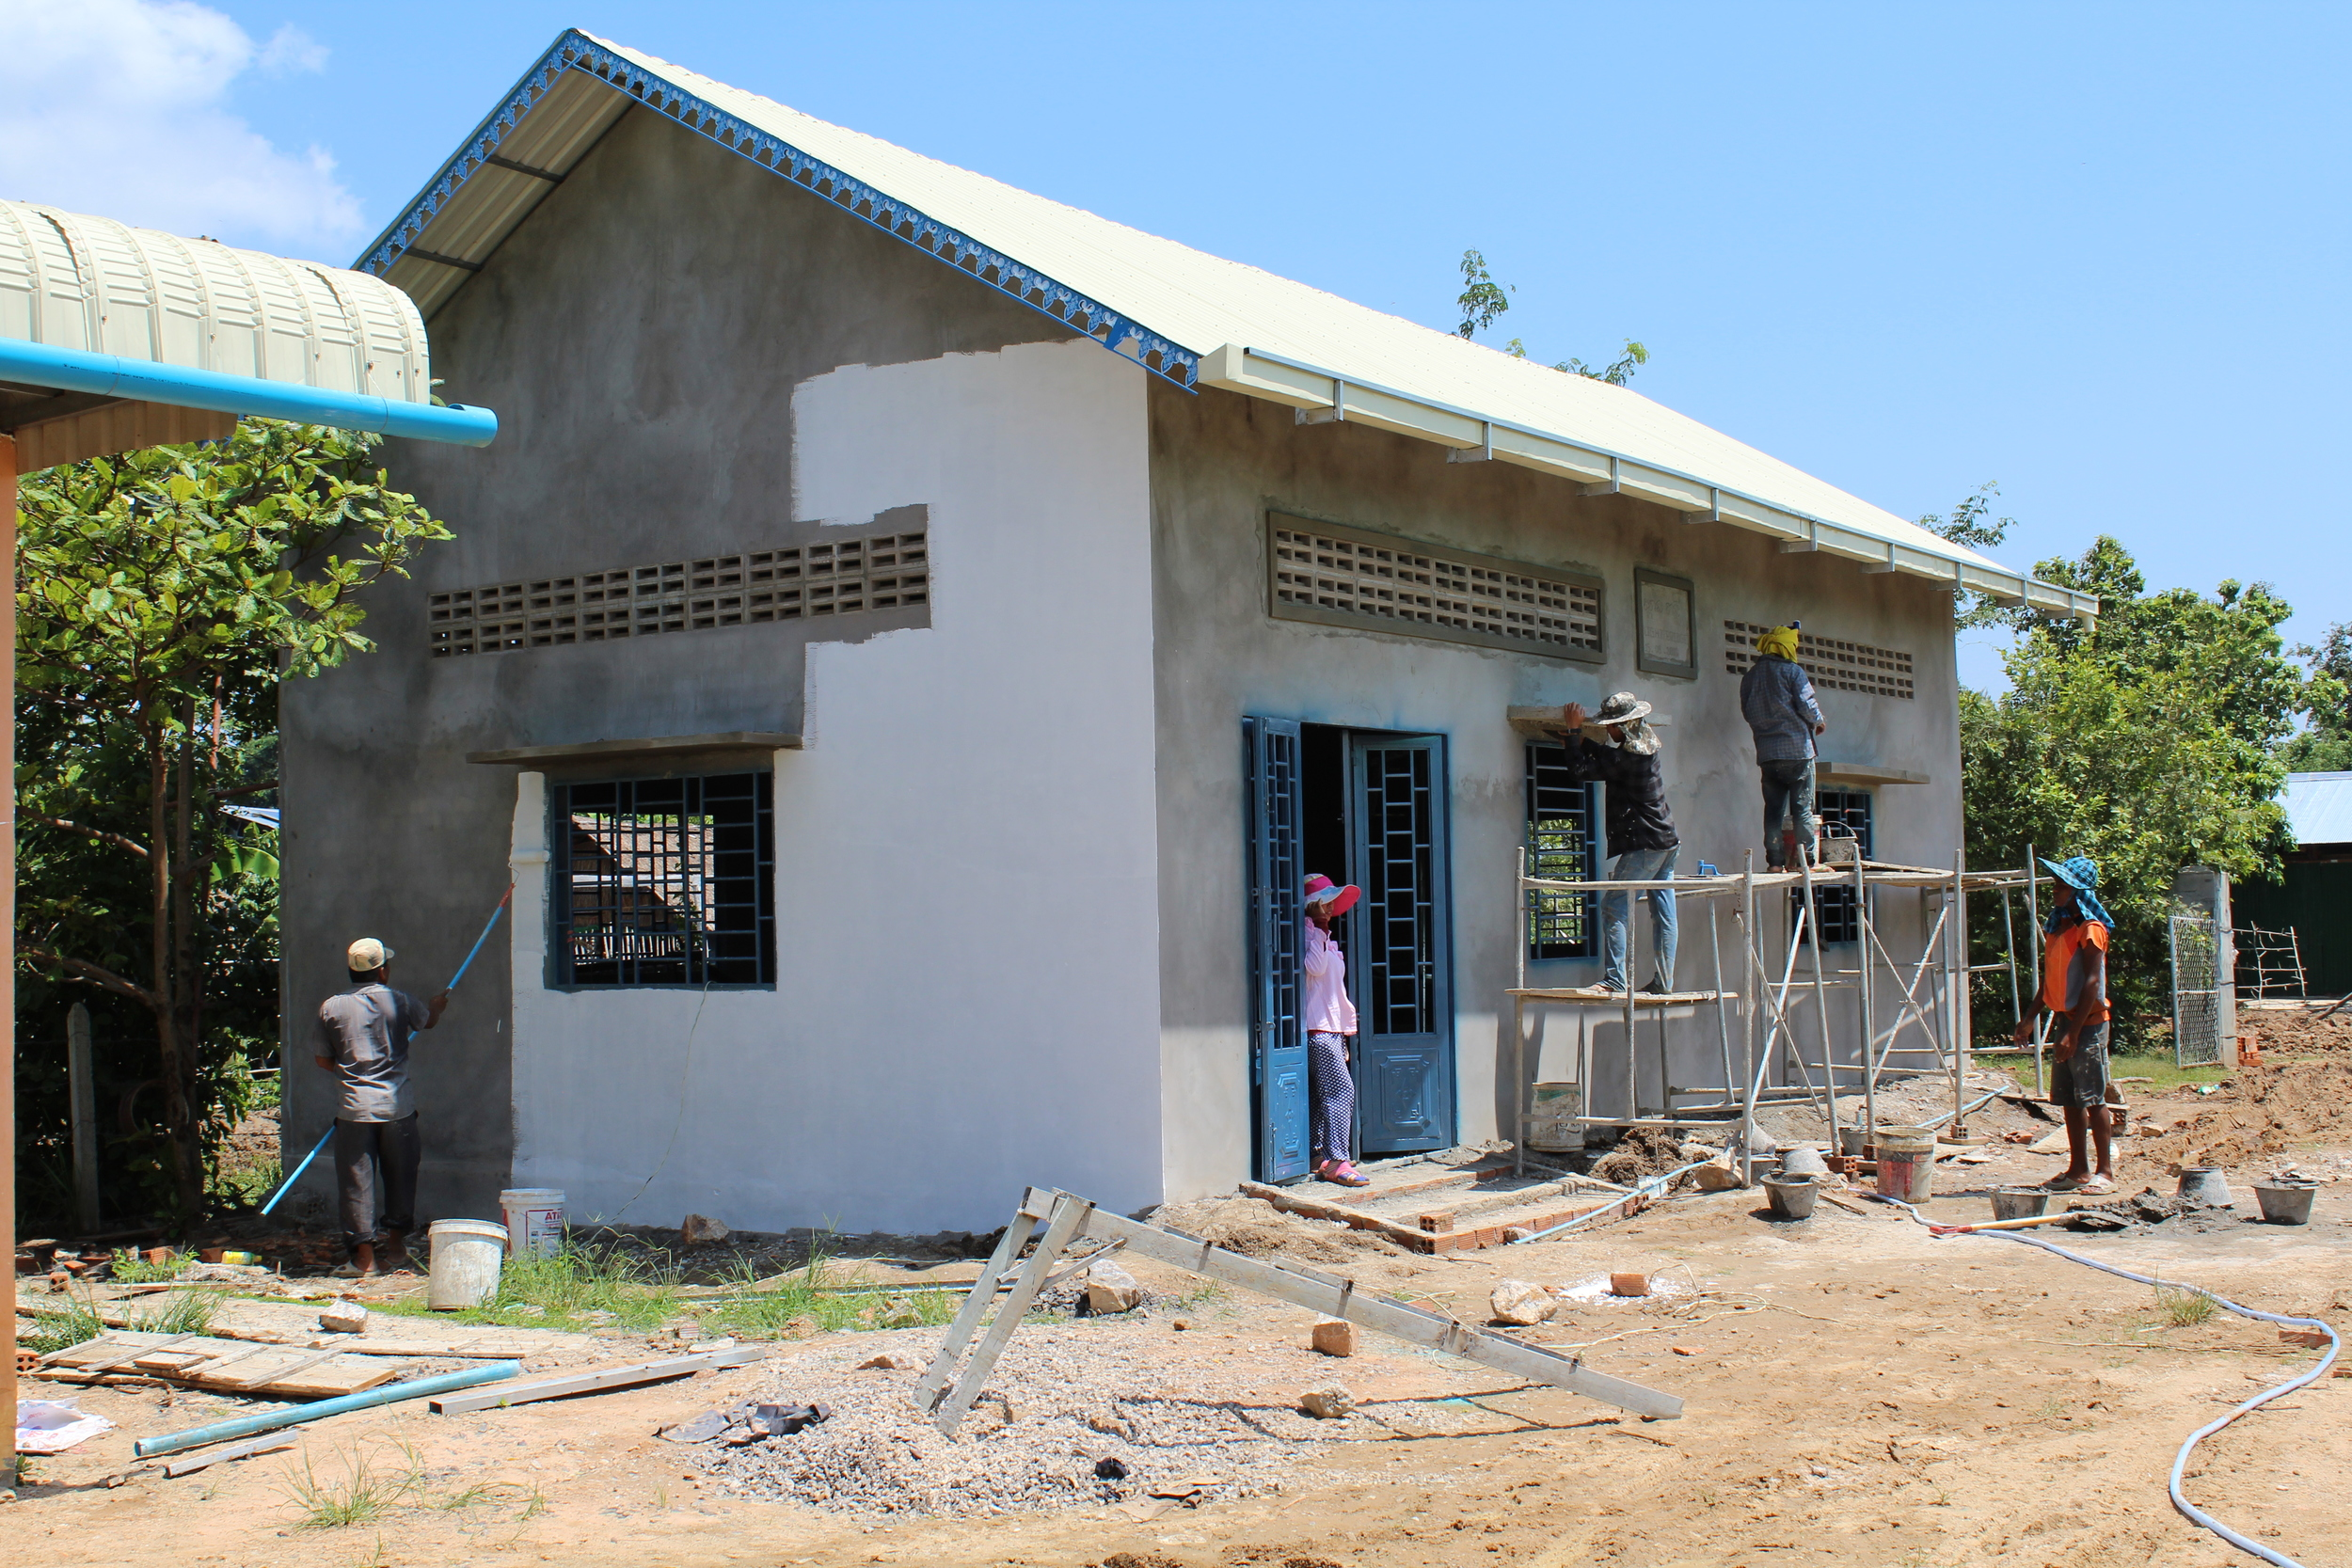 The new LandMine Design headquarters getting painted in September!